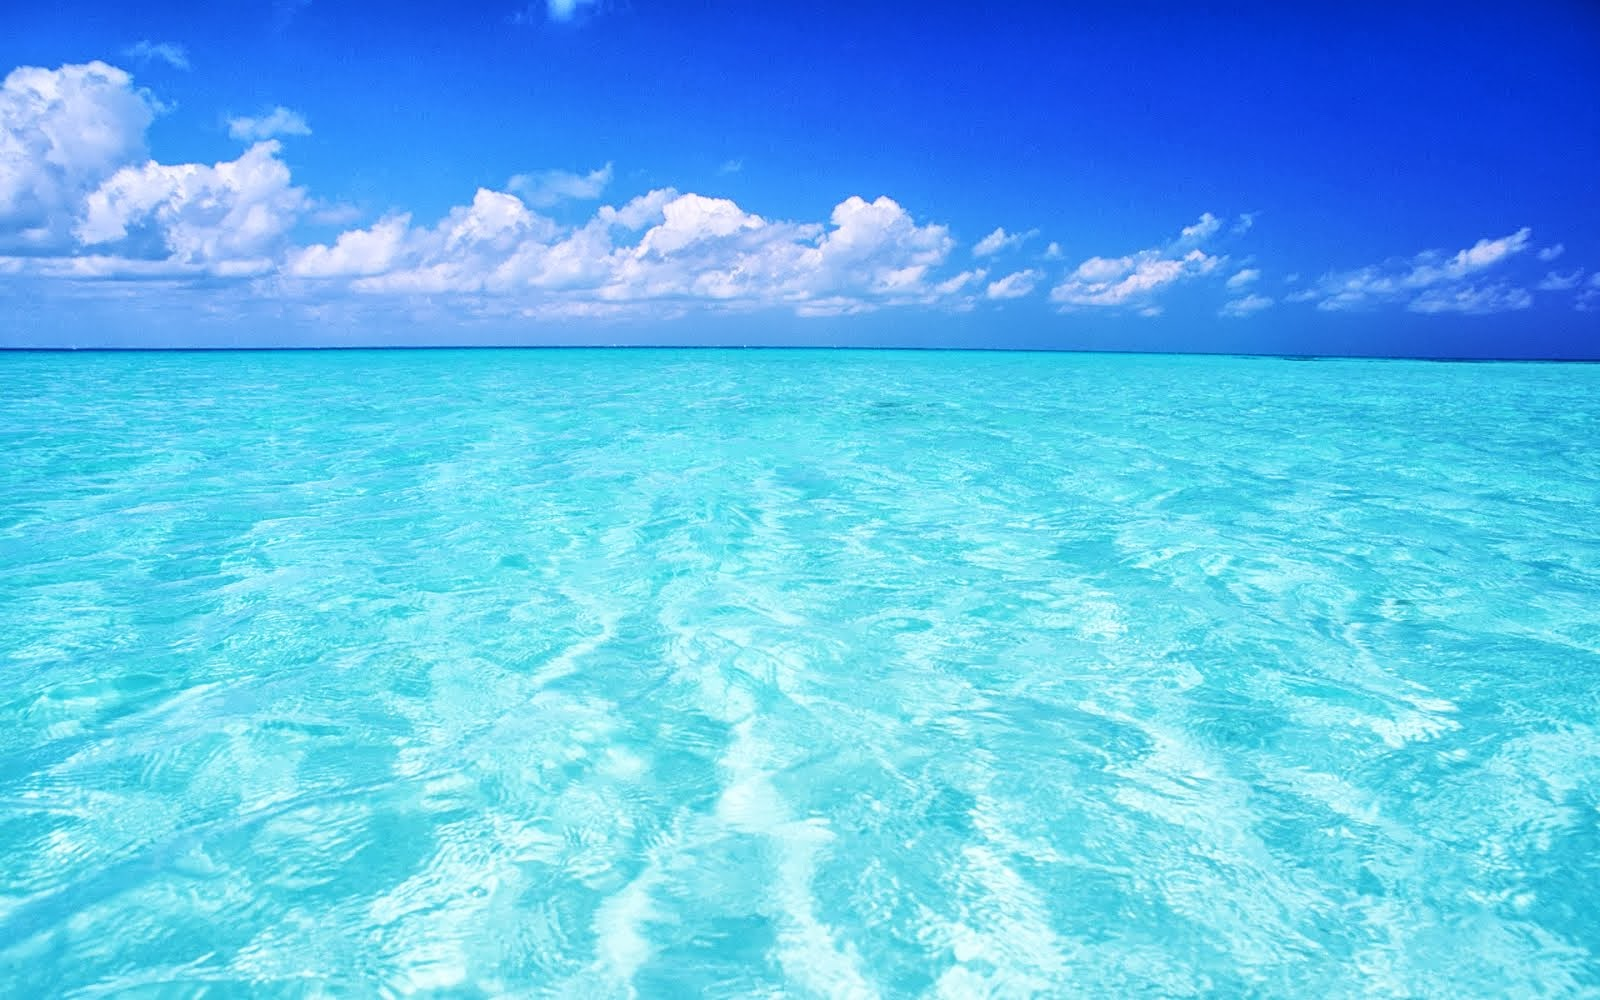 Techno Wlp Maldives Sky Sea Aquamarine Water Wallpapers